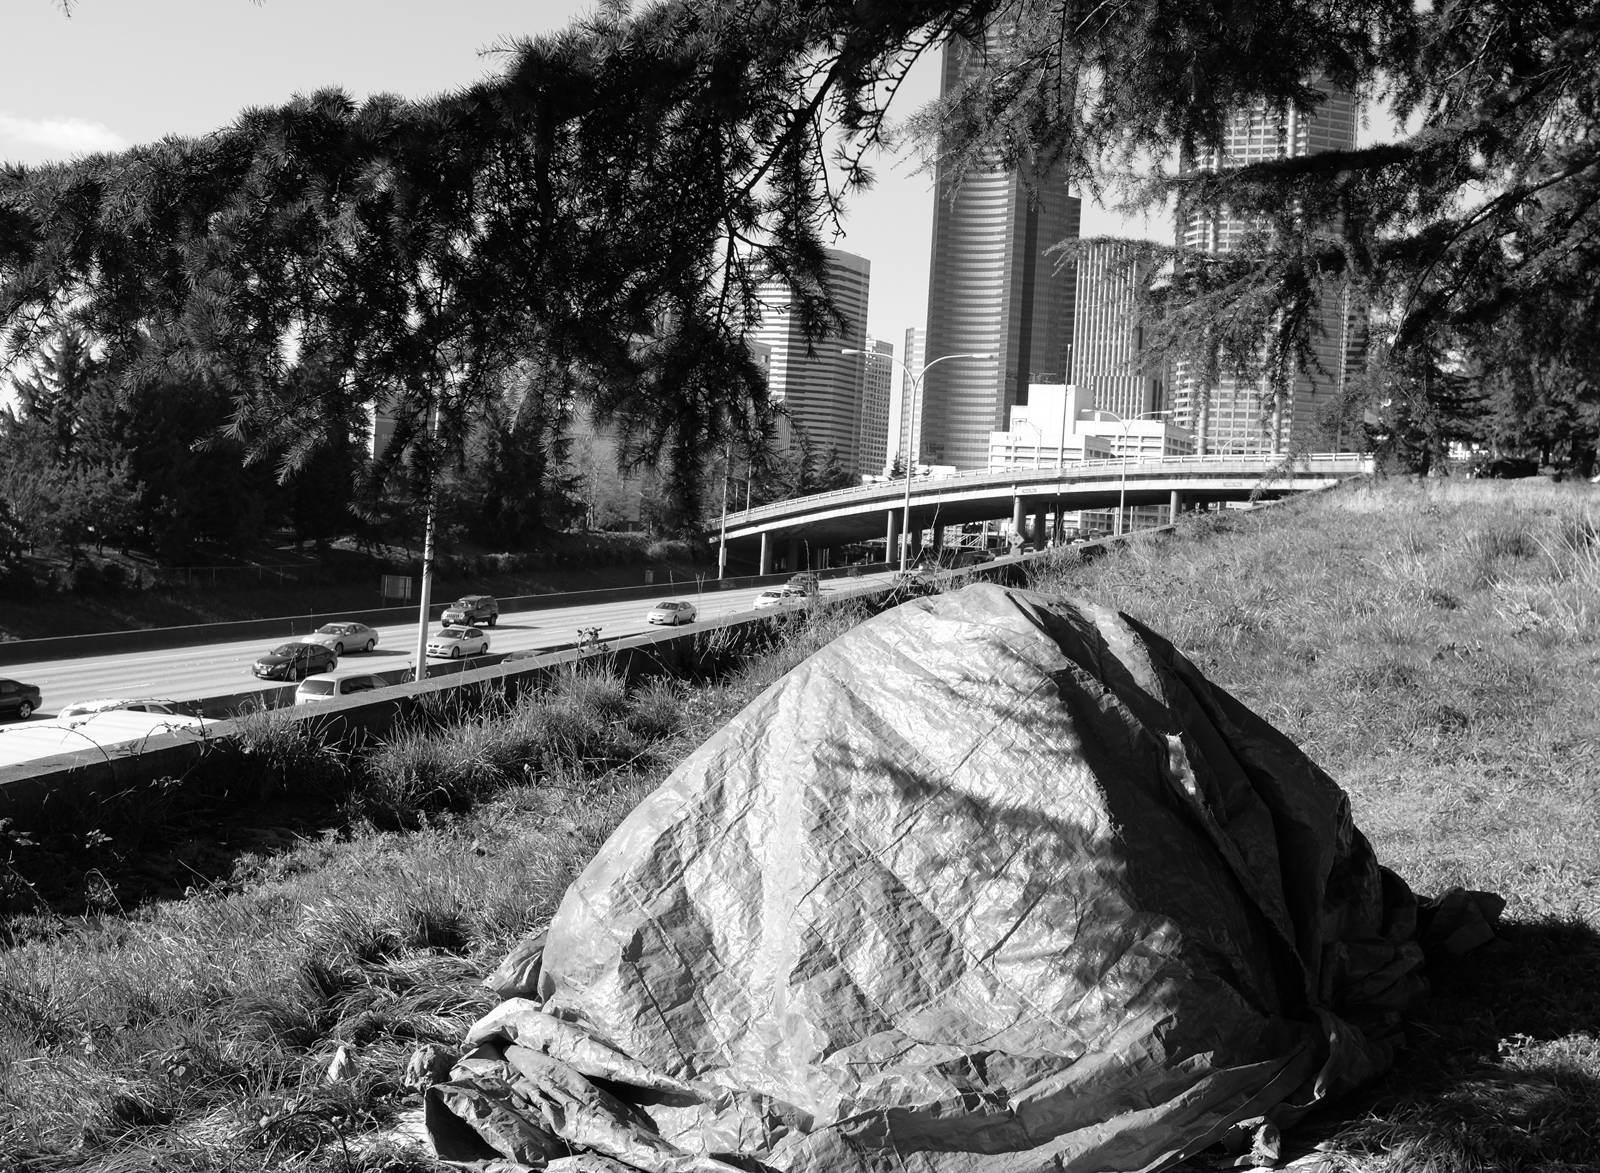 A tarp-covered tent over the Seattle highway and skyline